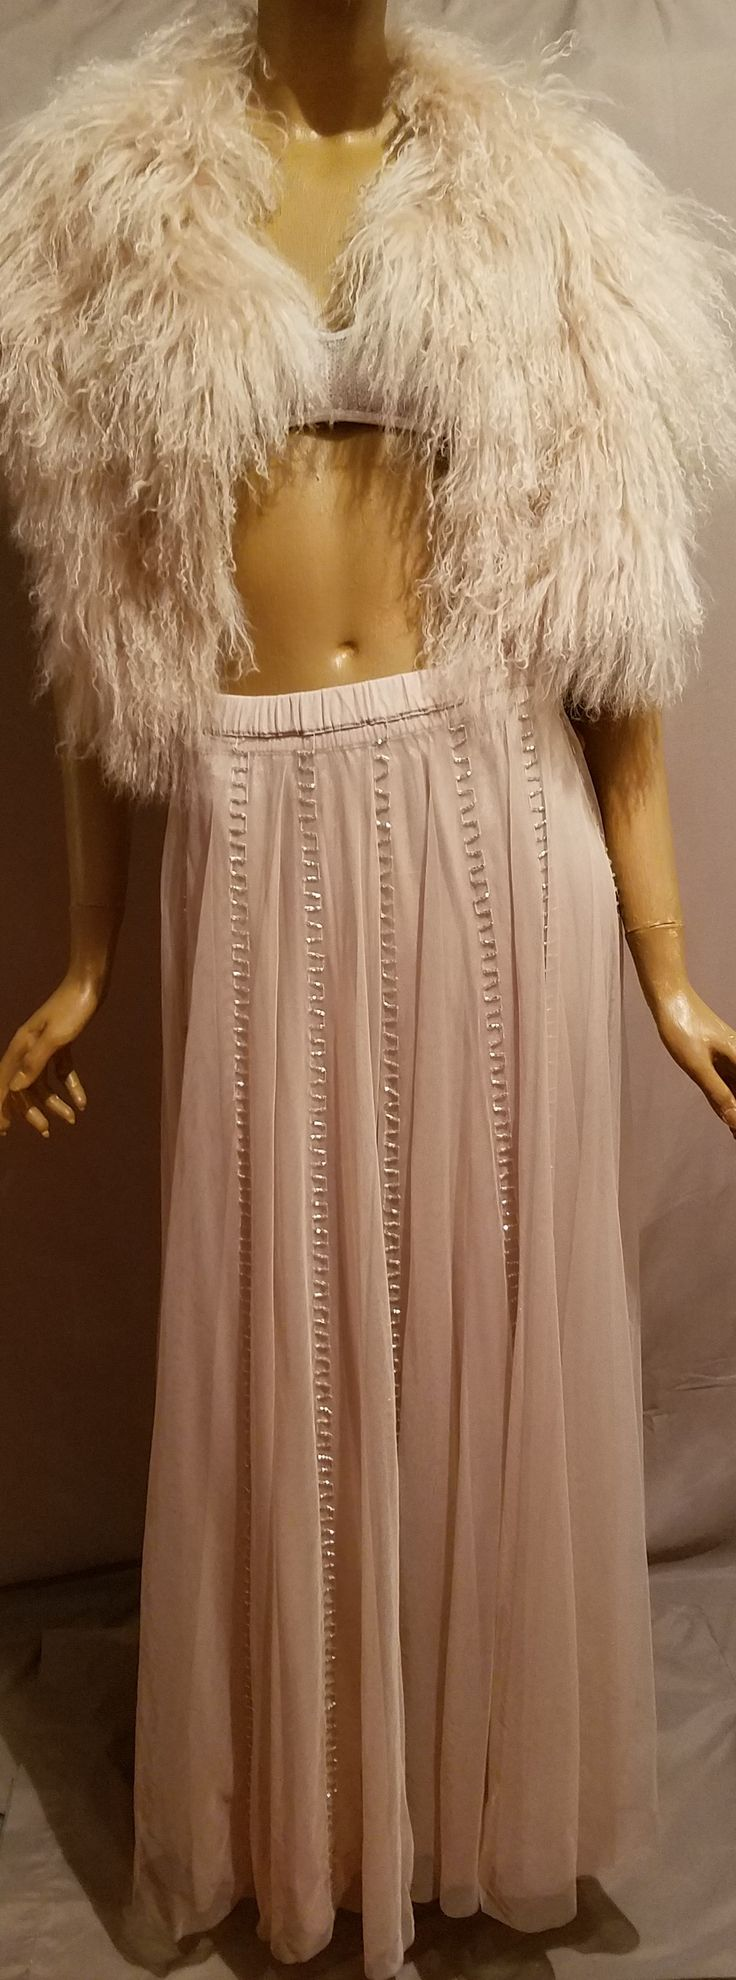 Bich-es     Nude Bich-es Nude Sheer Maxi Skirt by Chan Lu Dreamy  Nude Skirt w Nude Mongolian Crop Jacket and Nude Sequin Bra  Pair the with a Nude Thong Sandal Heel or Flat . Nude Glam Look .Very Rihanna Glam - Very SATC - Very Carrie Bradshaw Glam .Nude Fairytale Glam B That Nude Biche I am that nude biche